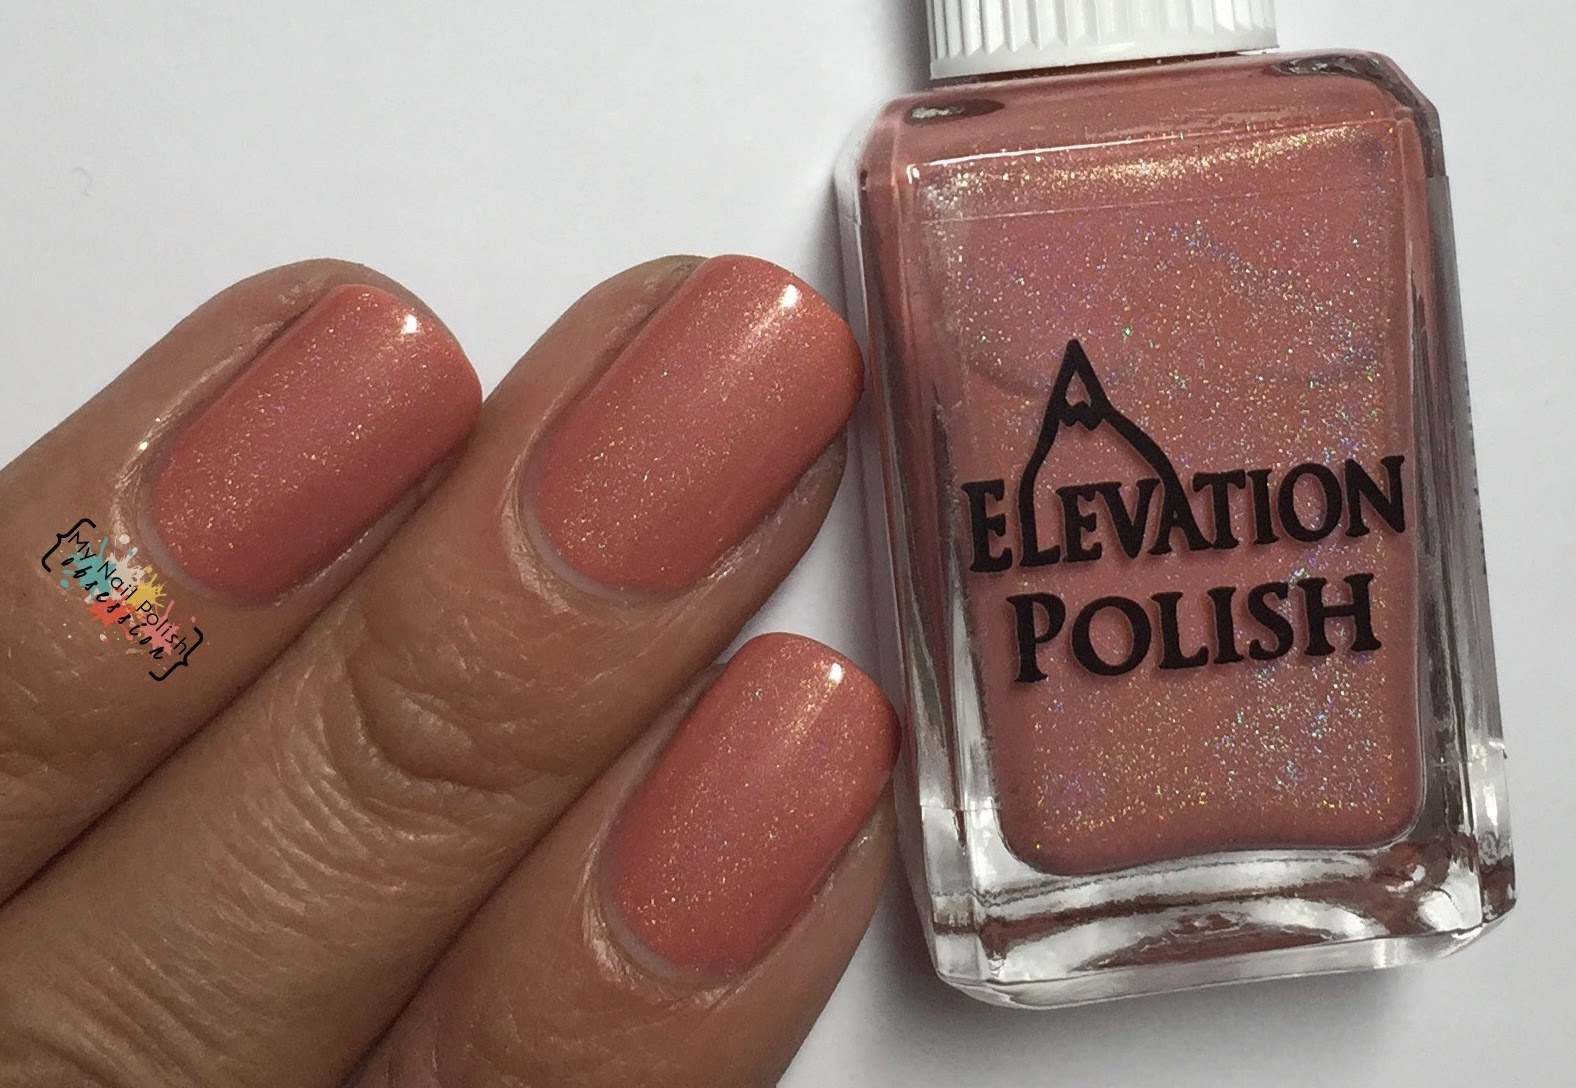 Elevation Polish SBP Saya de Malha